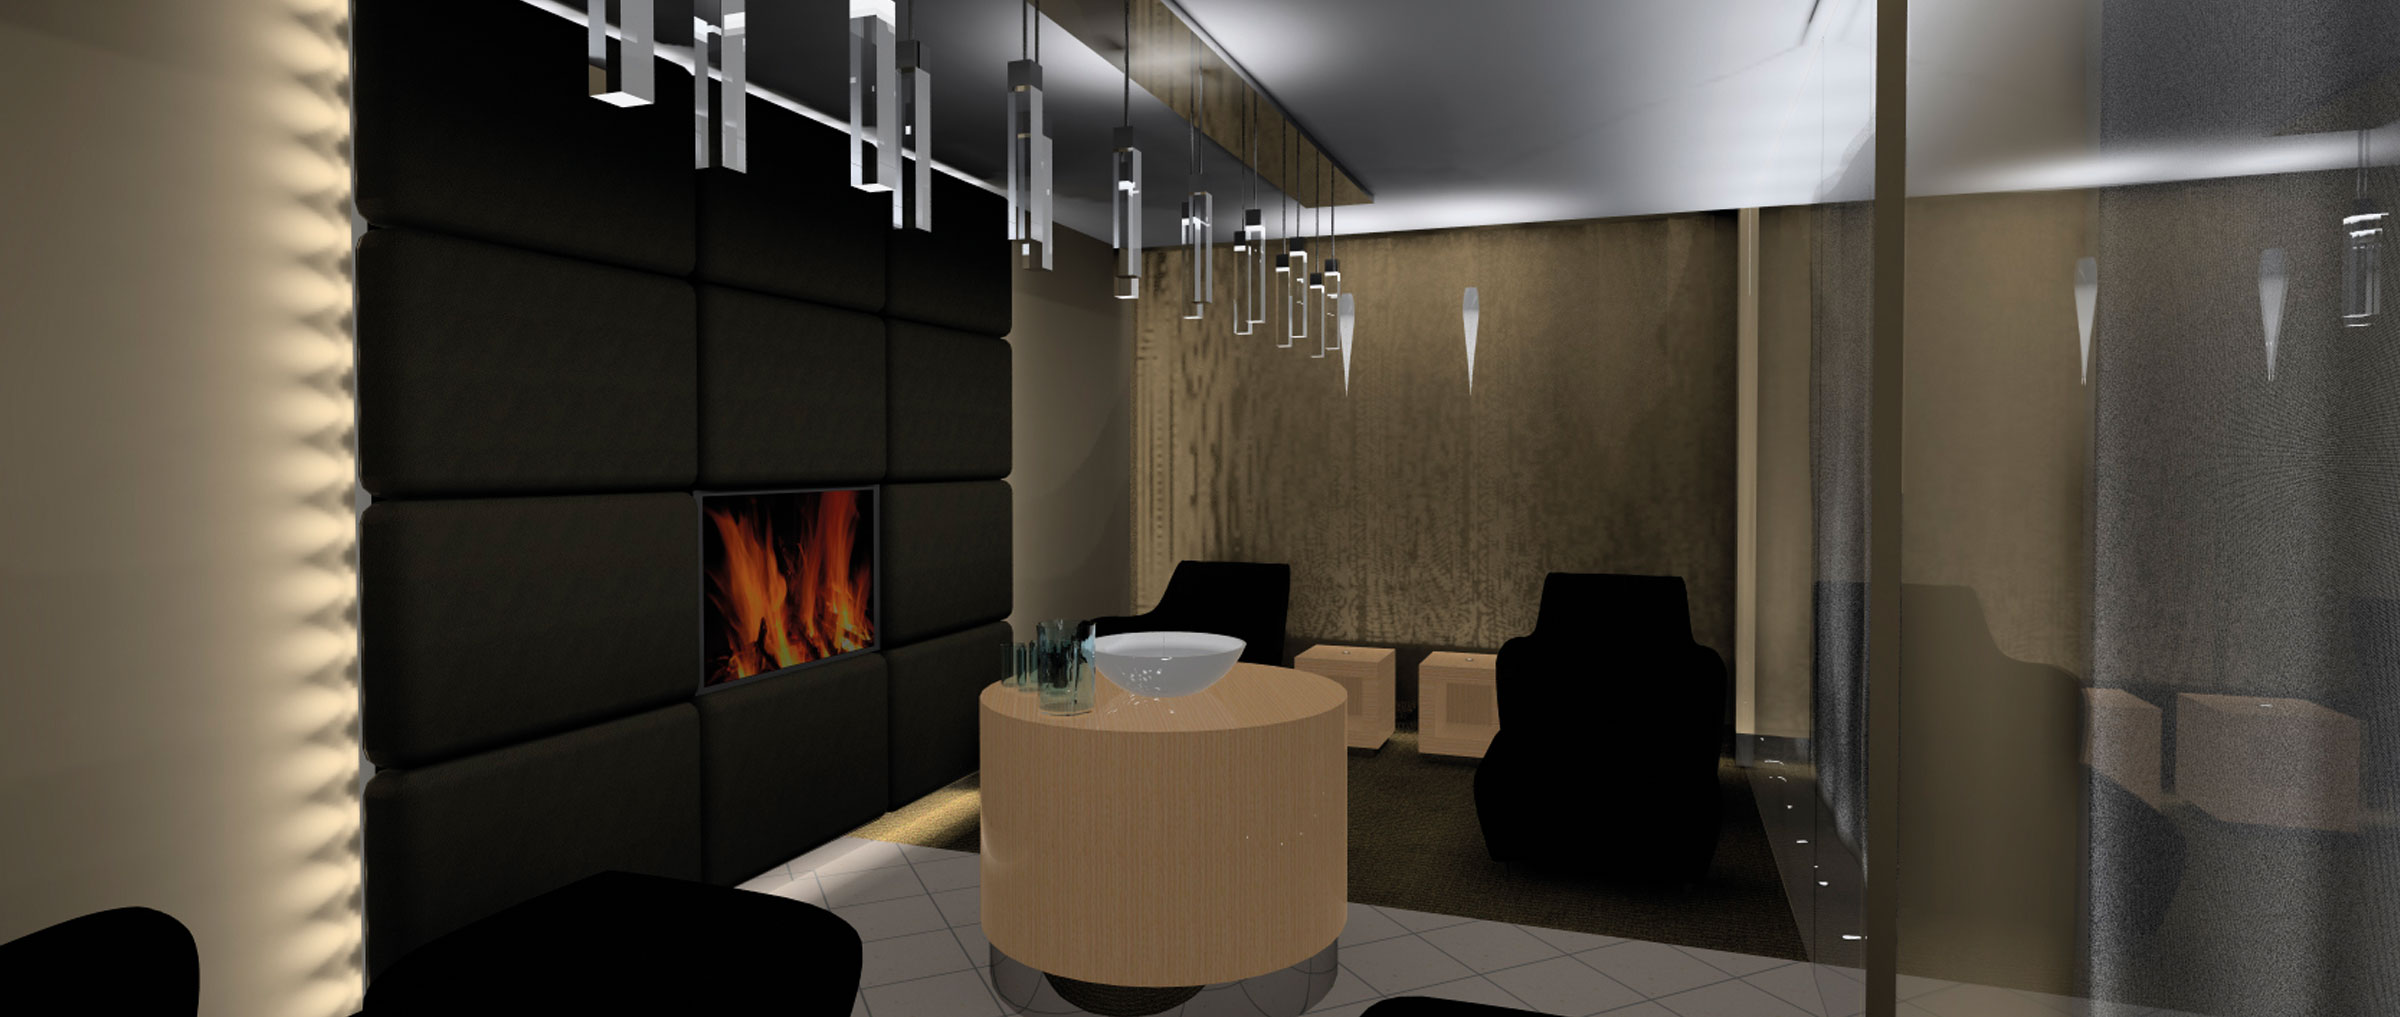 hotel spa with fireplace and beds